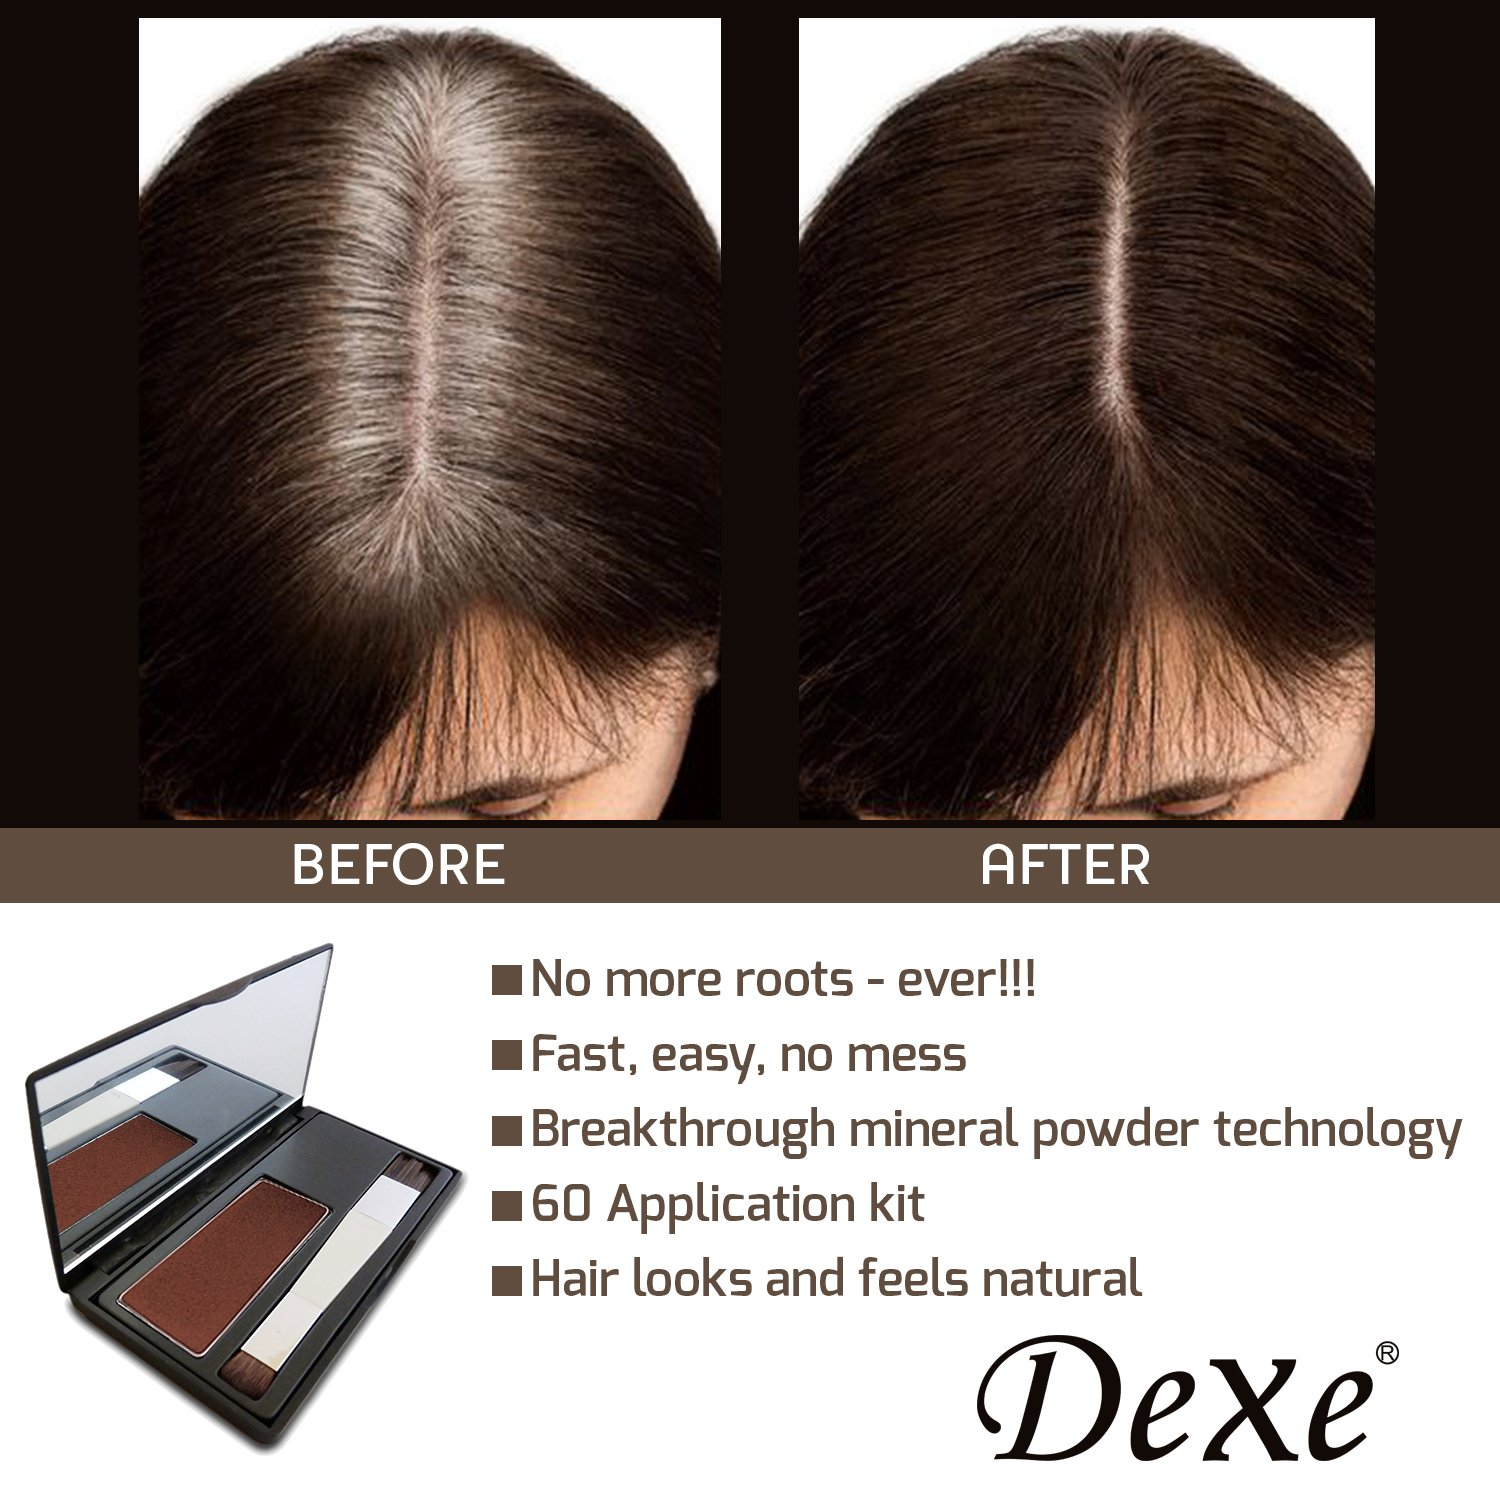 Amazon.com: Dexe Root Touch Up - Cover Up Your Gray Between Coloring ...